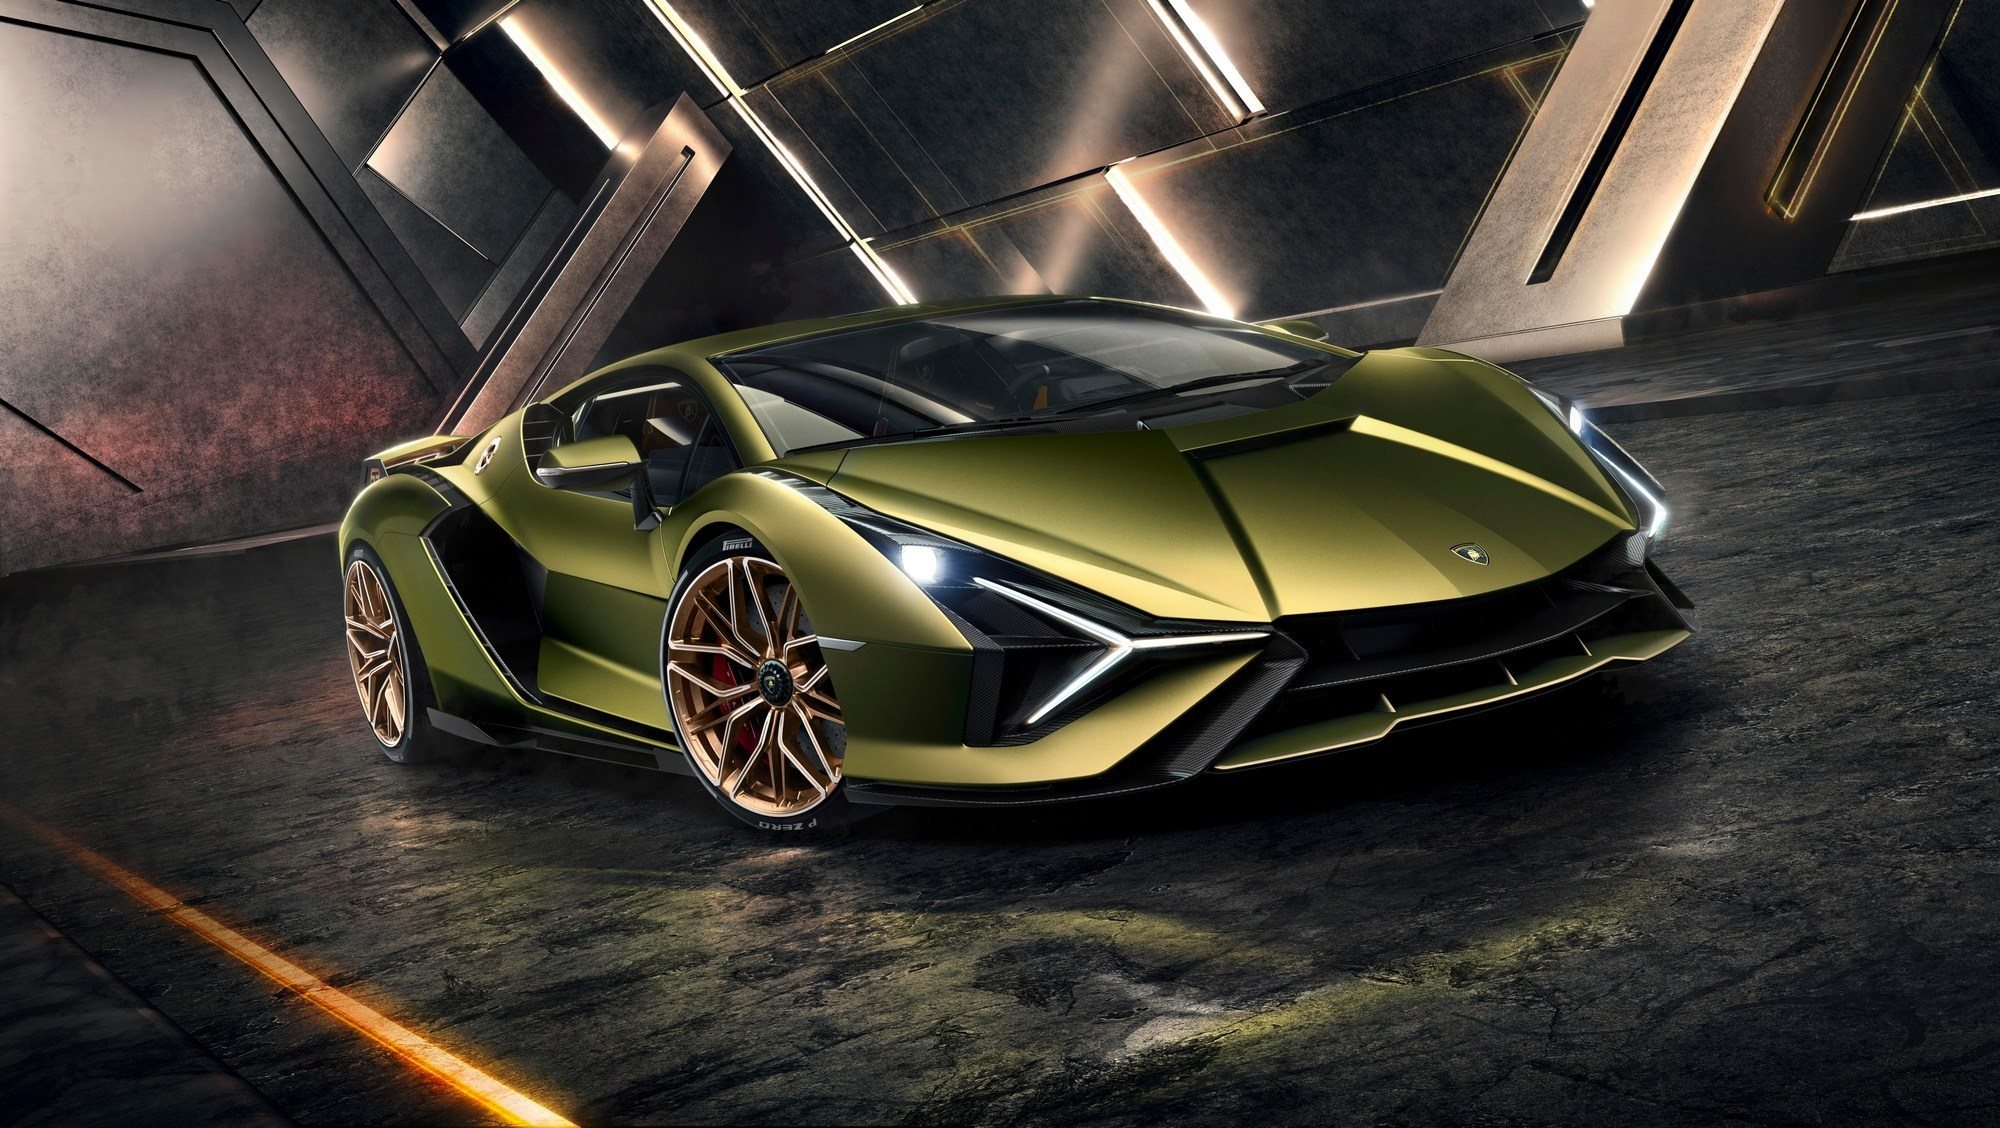 Volkswagen Group could sell Lamborghini